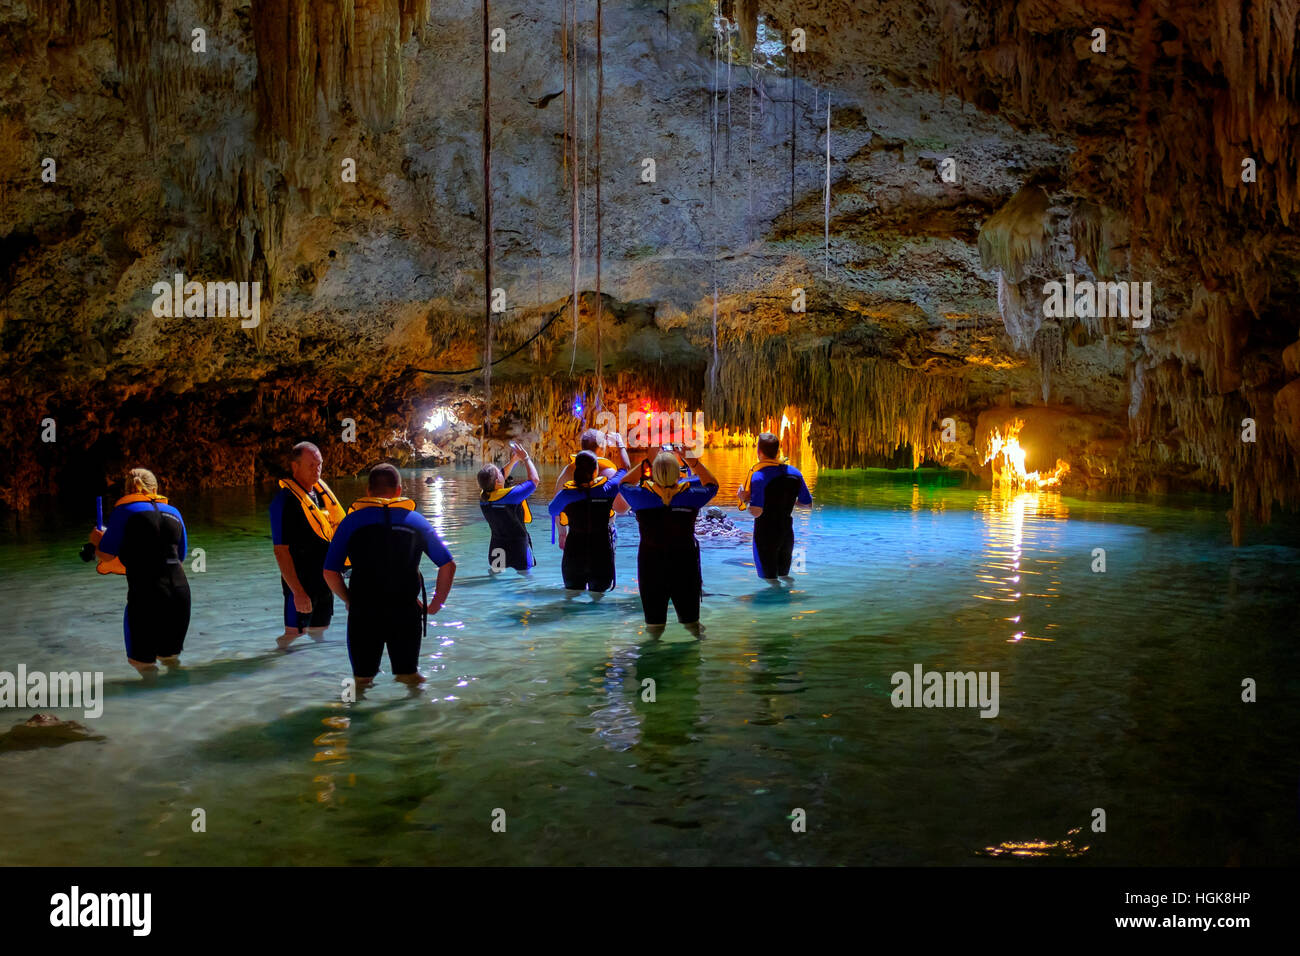 Tourists in the Mexican Cenote or sinkhole at Tak Be Ha, Yucatan Province, Mexico - Stock Image